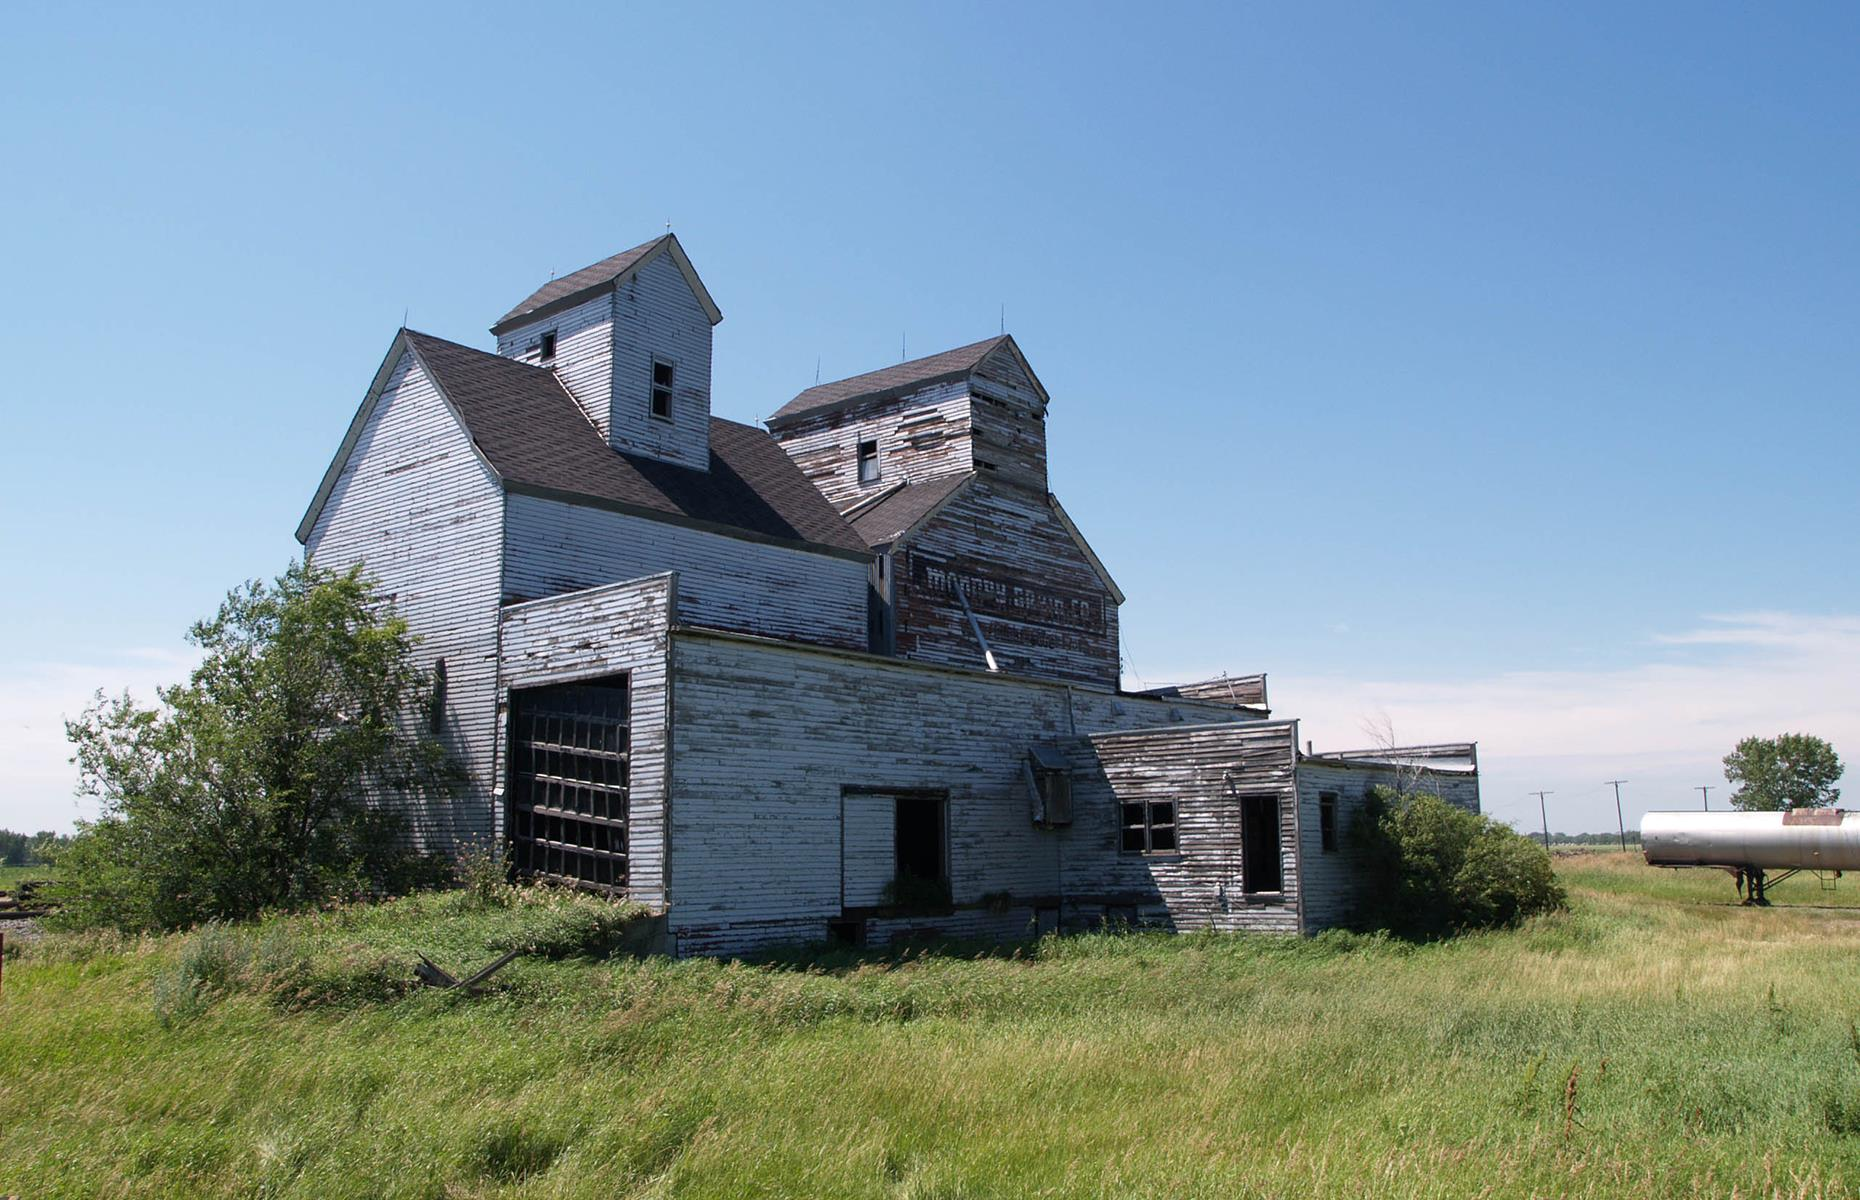 Slide 69 of 101: The remote town was largely abandoned in the mid-20th century when many of the inhabitants left to seek work in larger towns and cities. Today, less than 70 people live in Ardoch, and this grain elevator is one of several abandoned 19th-century buildings. Read about the incredible finds discovered in abandoned barns and buildings